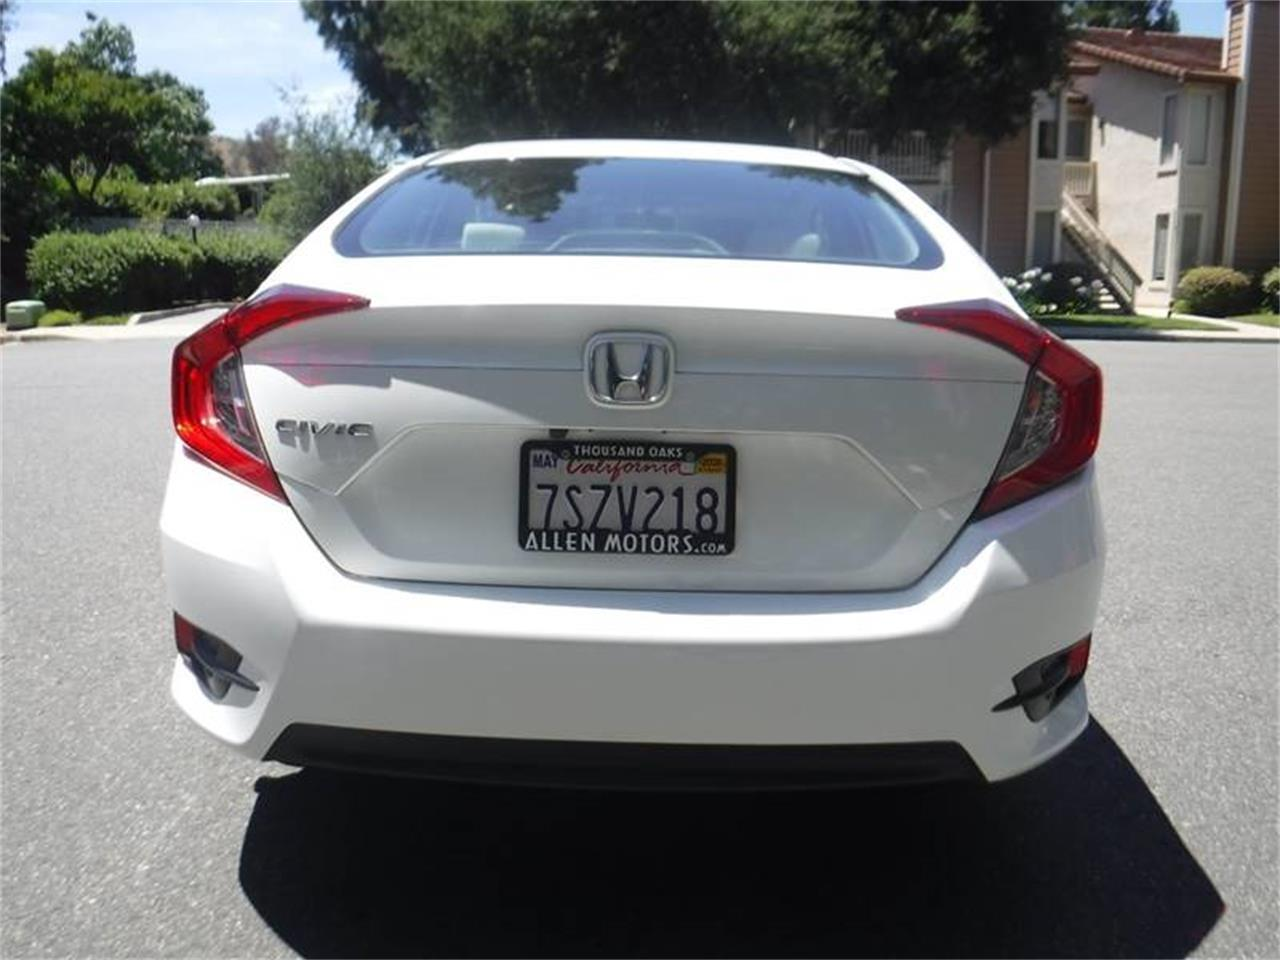 Large Picture of '16 Civic - QKZW